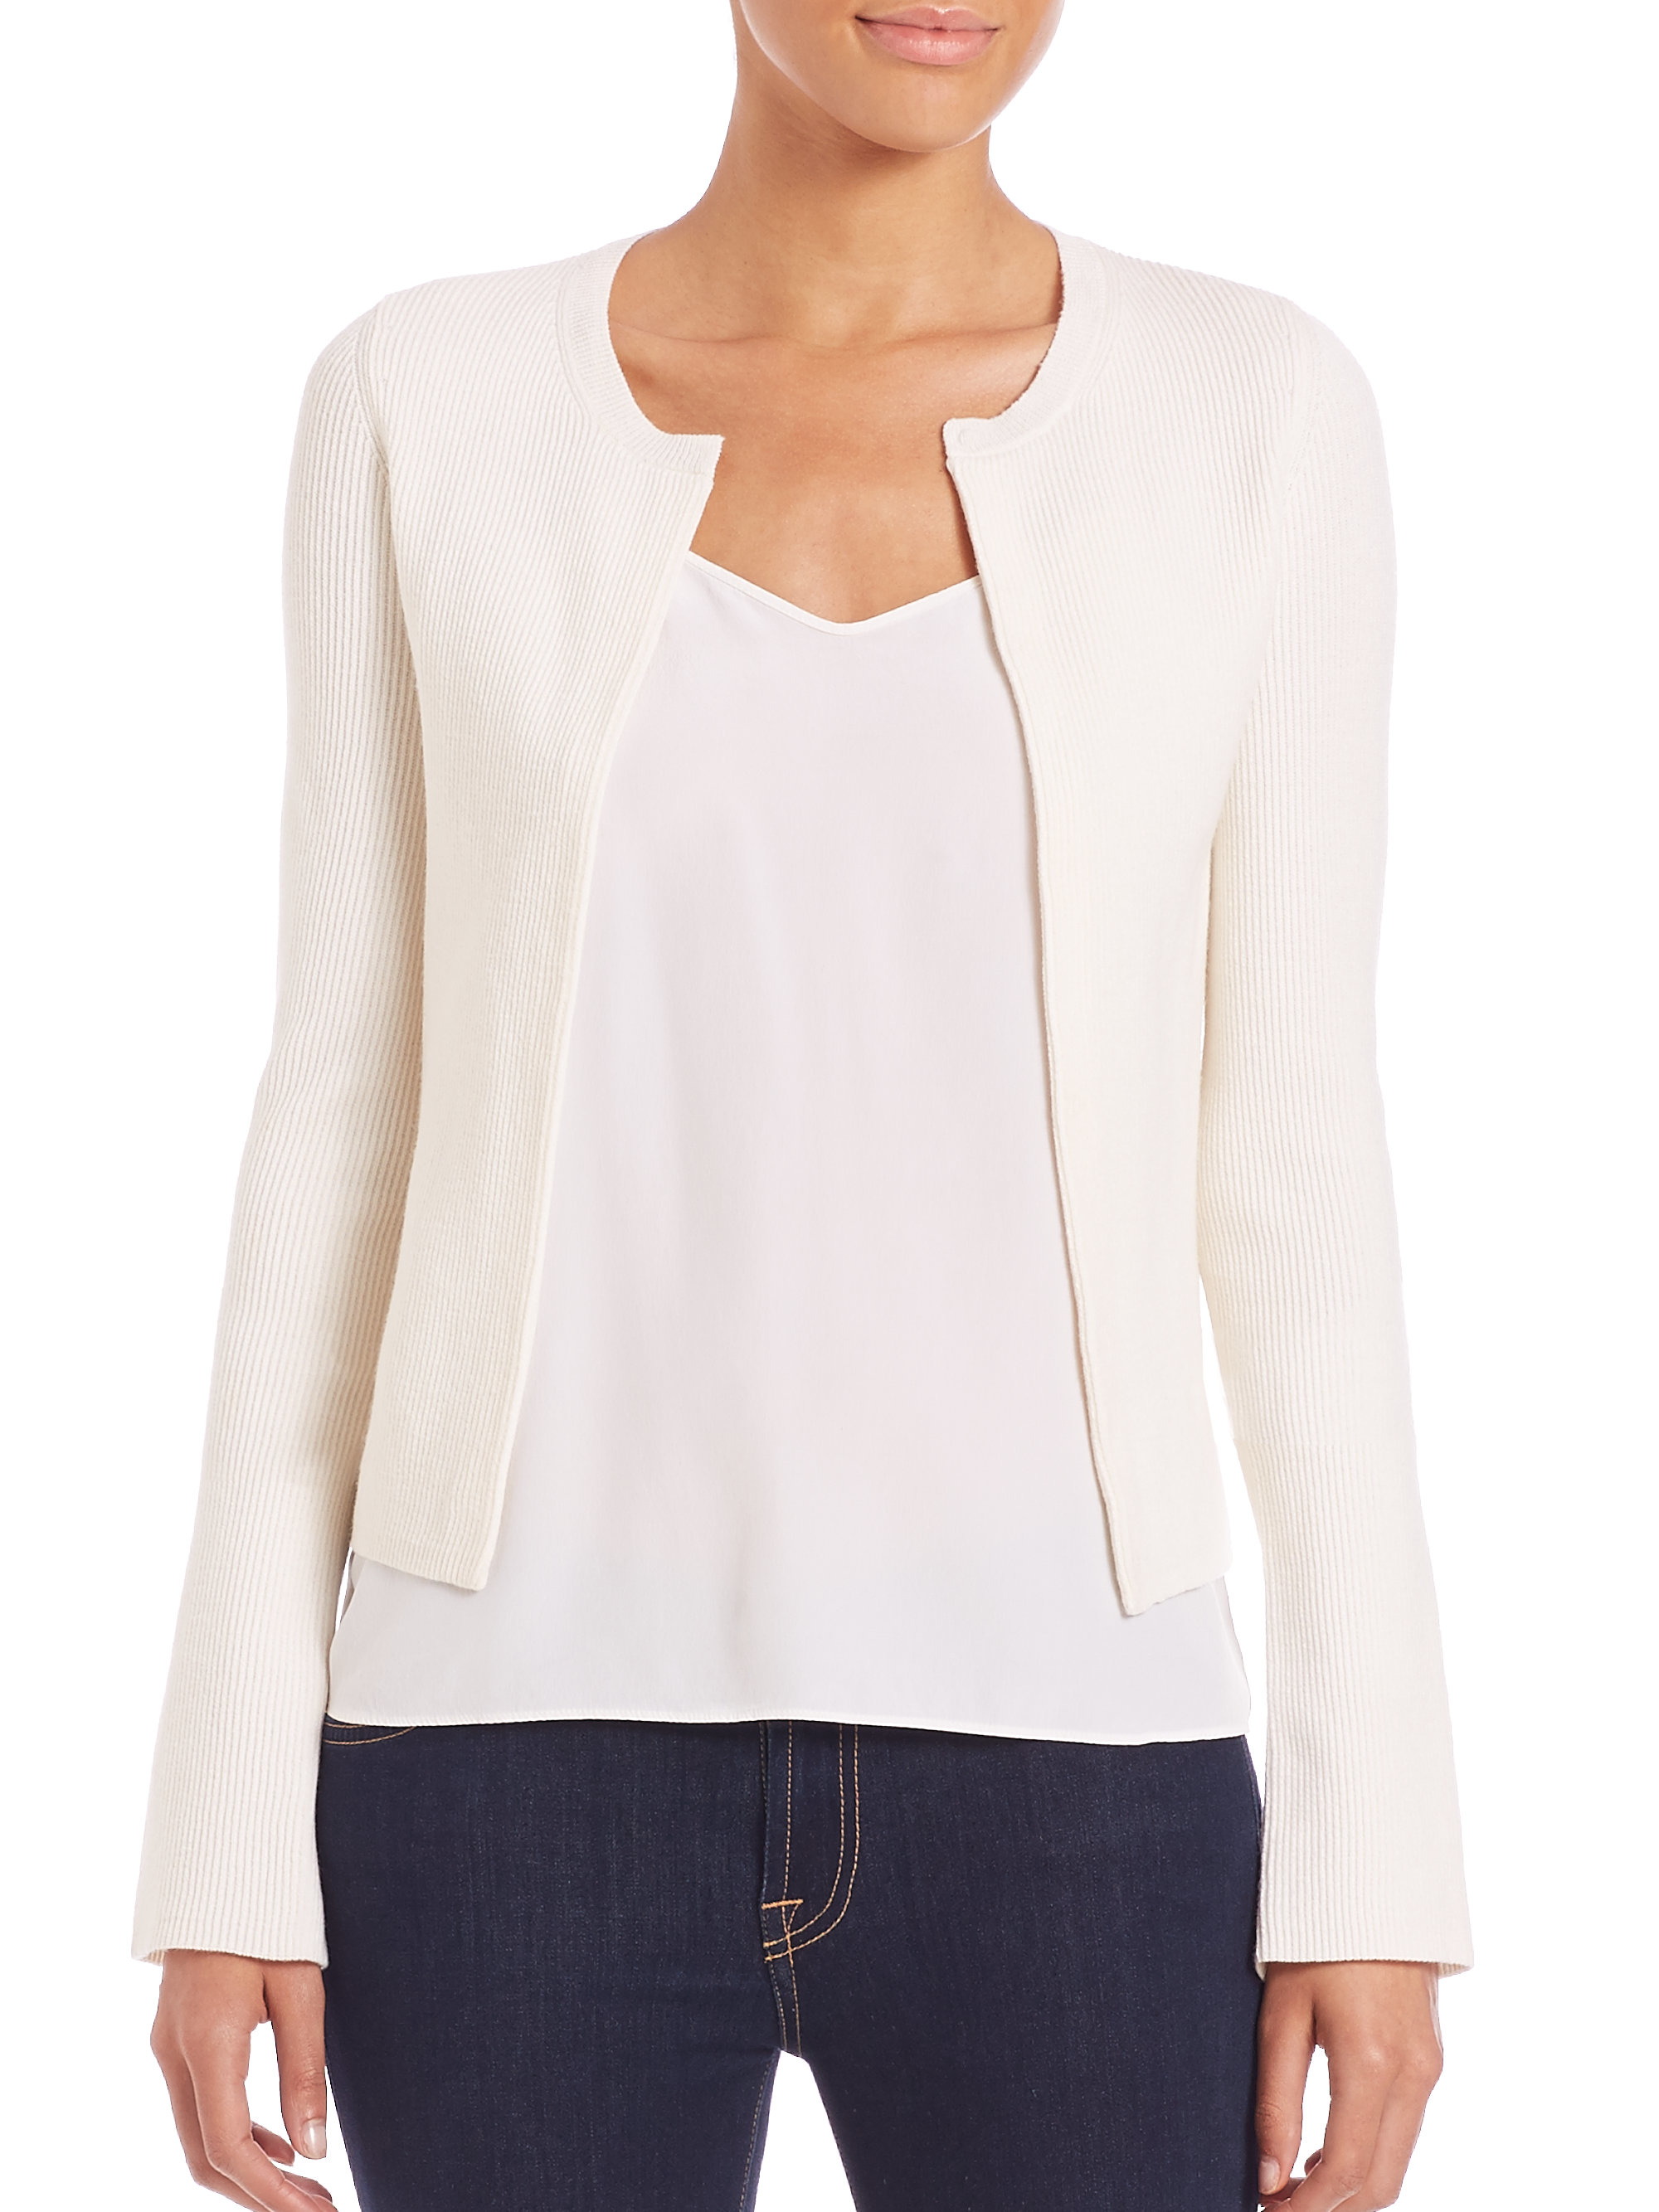 Theory Kilna Evian Stretch Wool Cardigan in White | Lyst